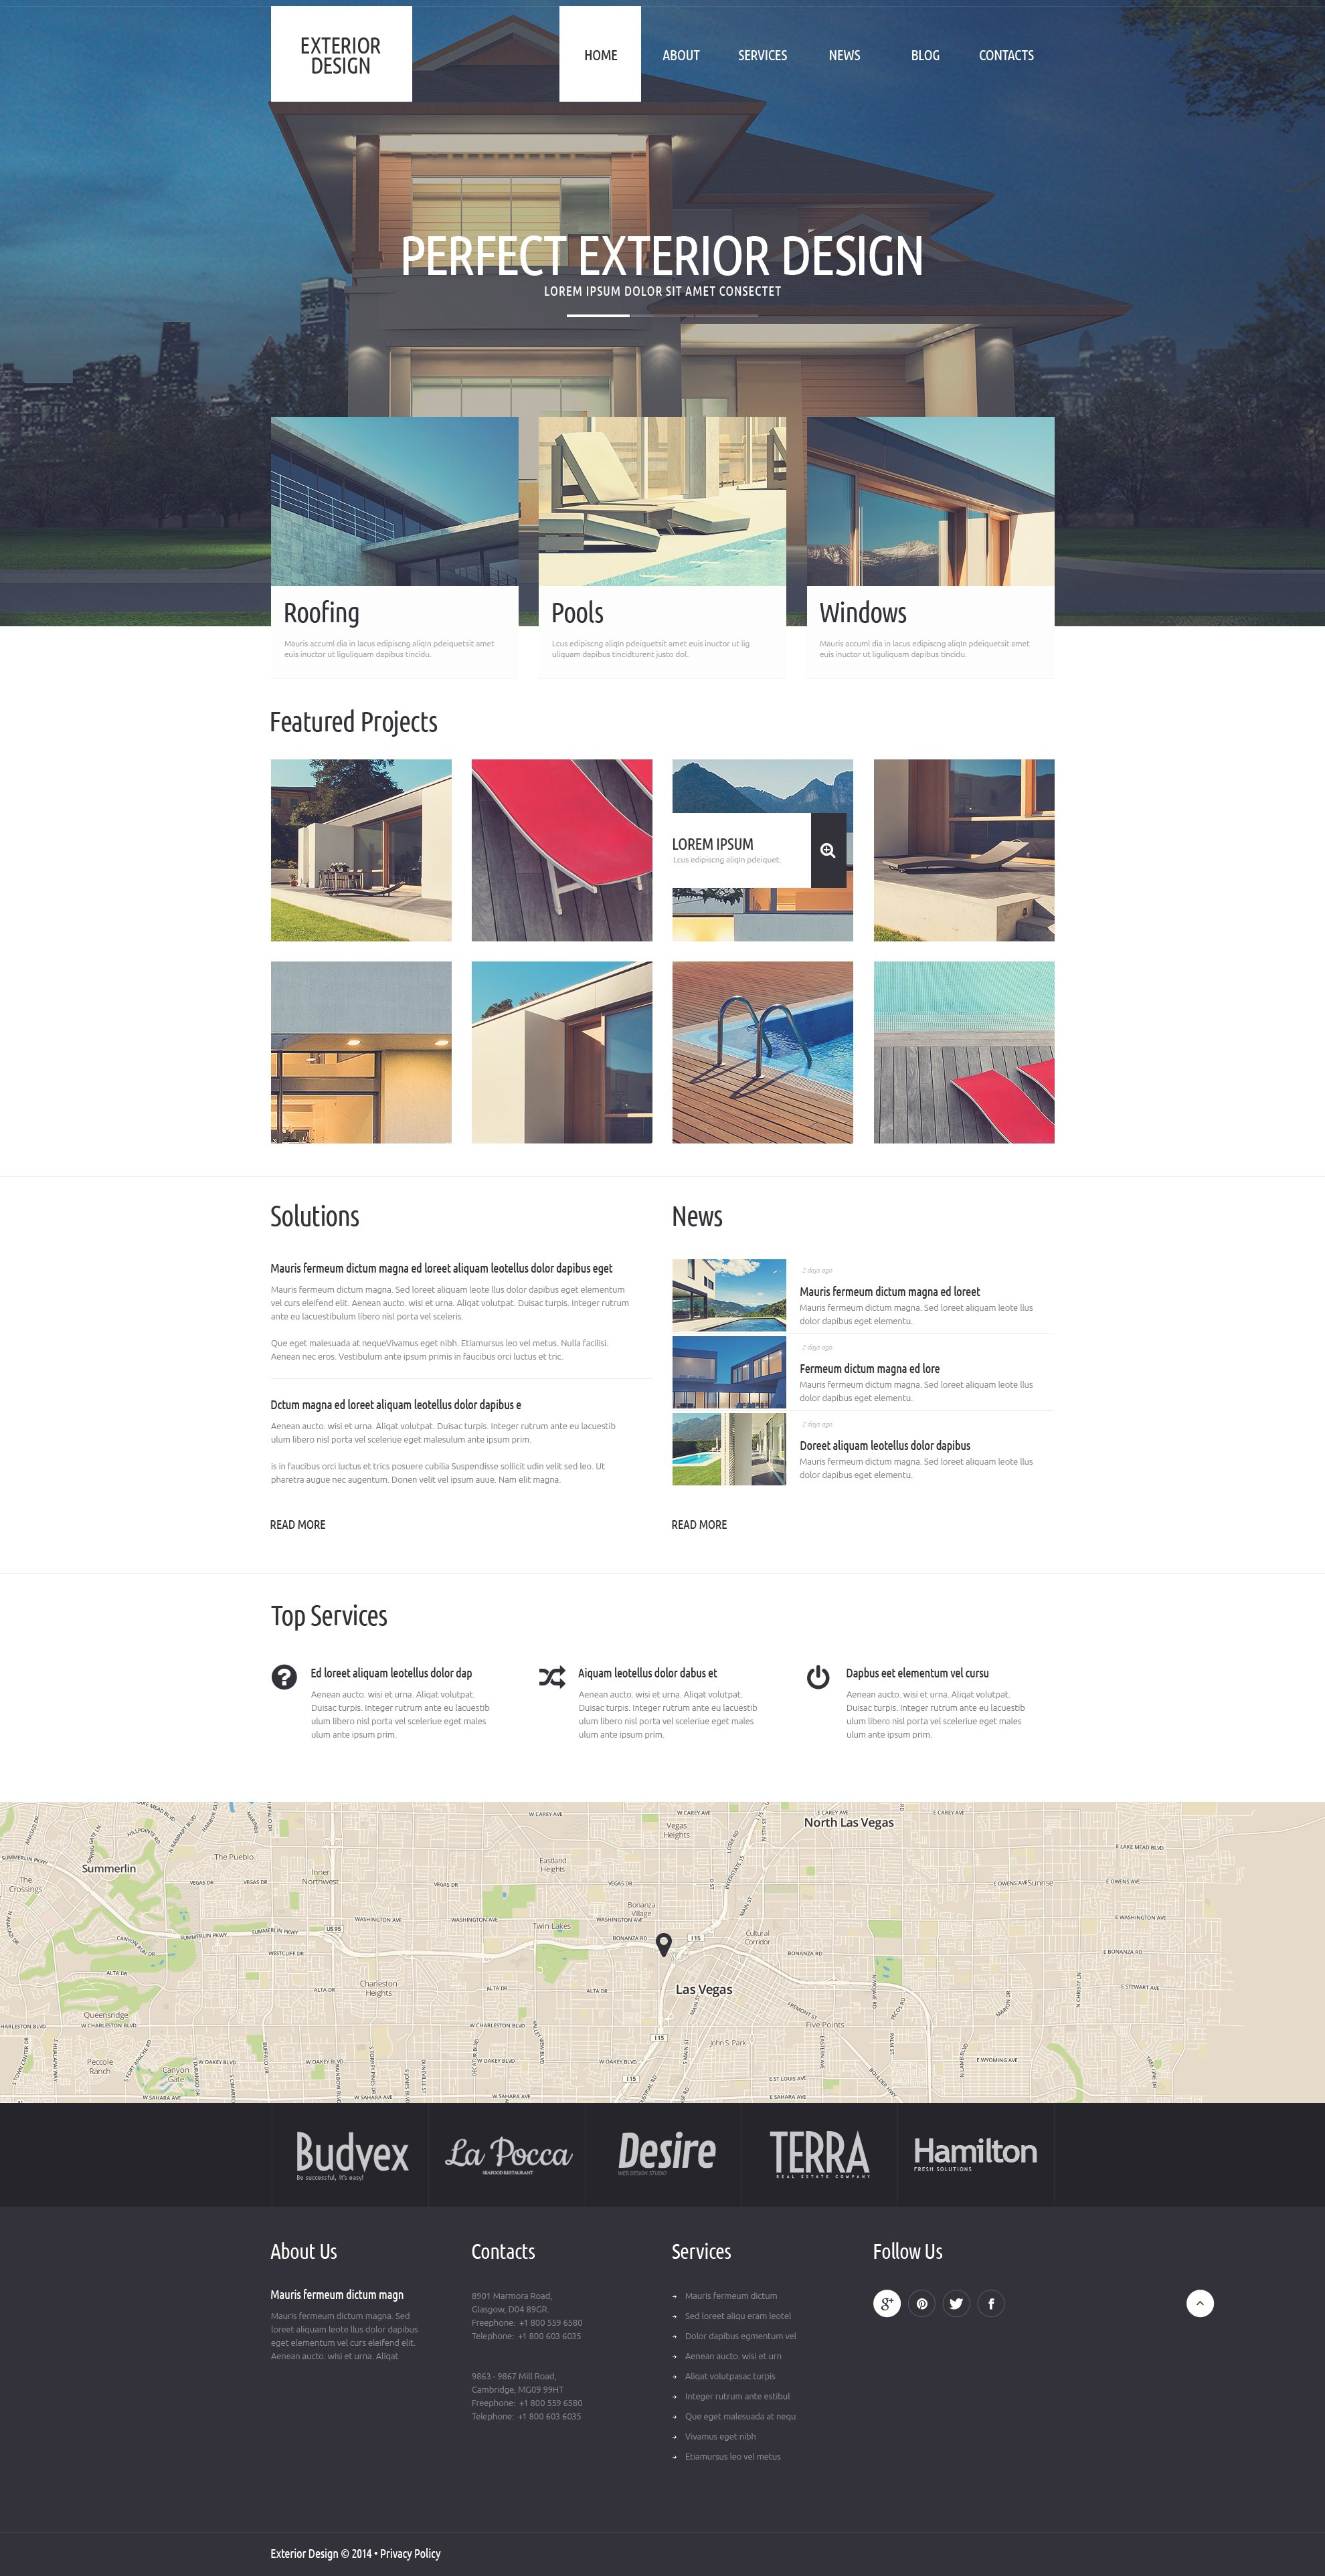 Refined Exterior Design WordPress Theme - screenshot